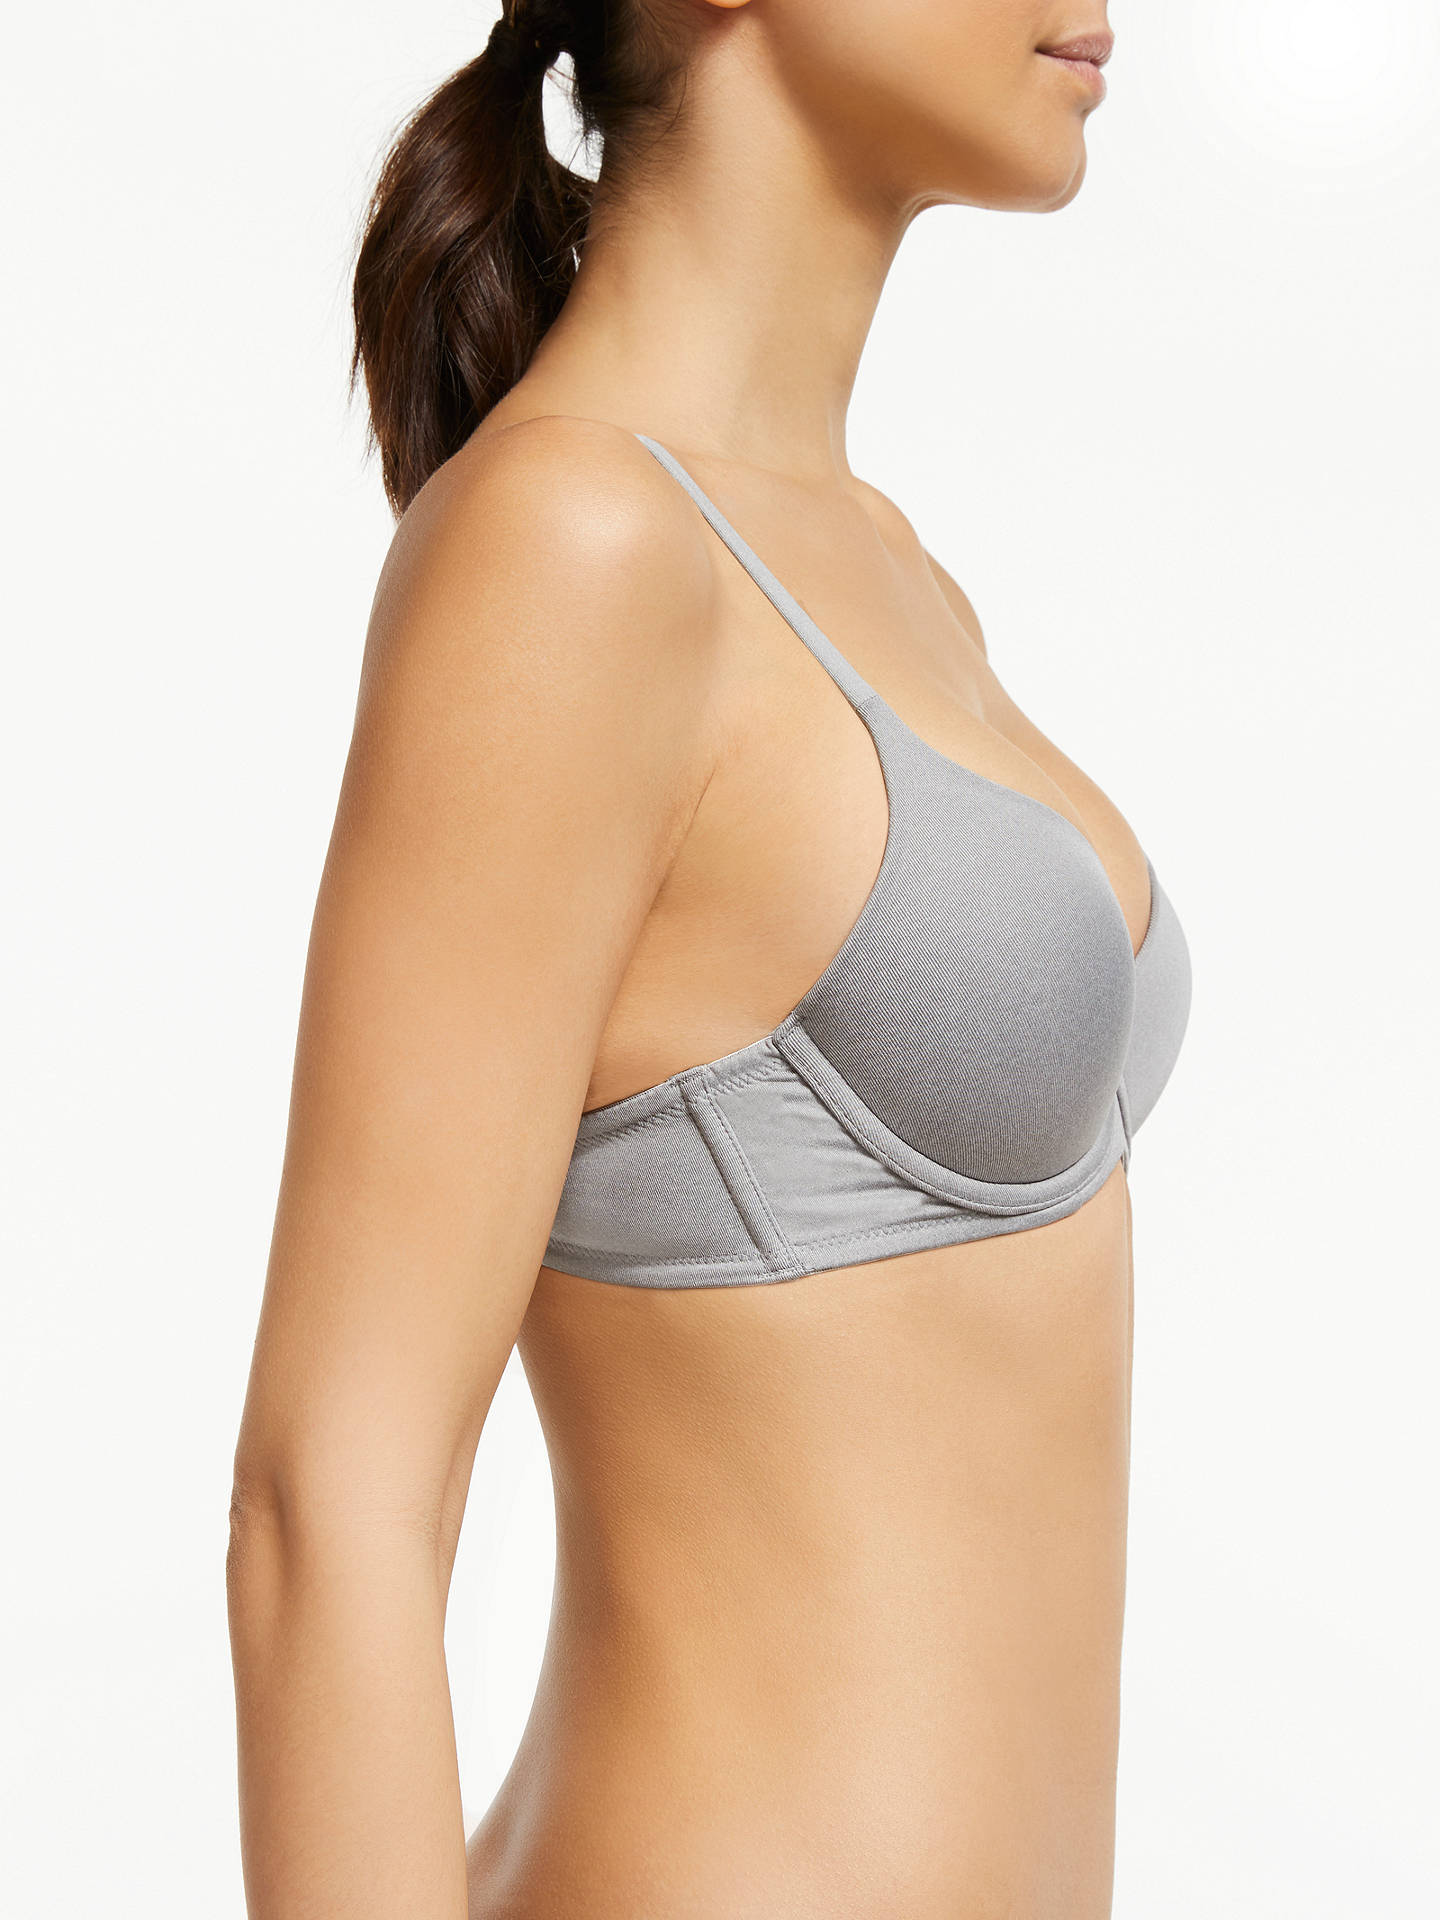 BuyJohn Lewis & Partners Underwired T-Shirt Bra, Grey Marl, 30A Online at johnlewis.com